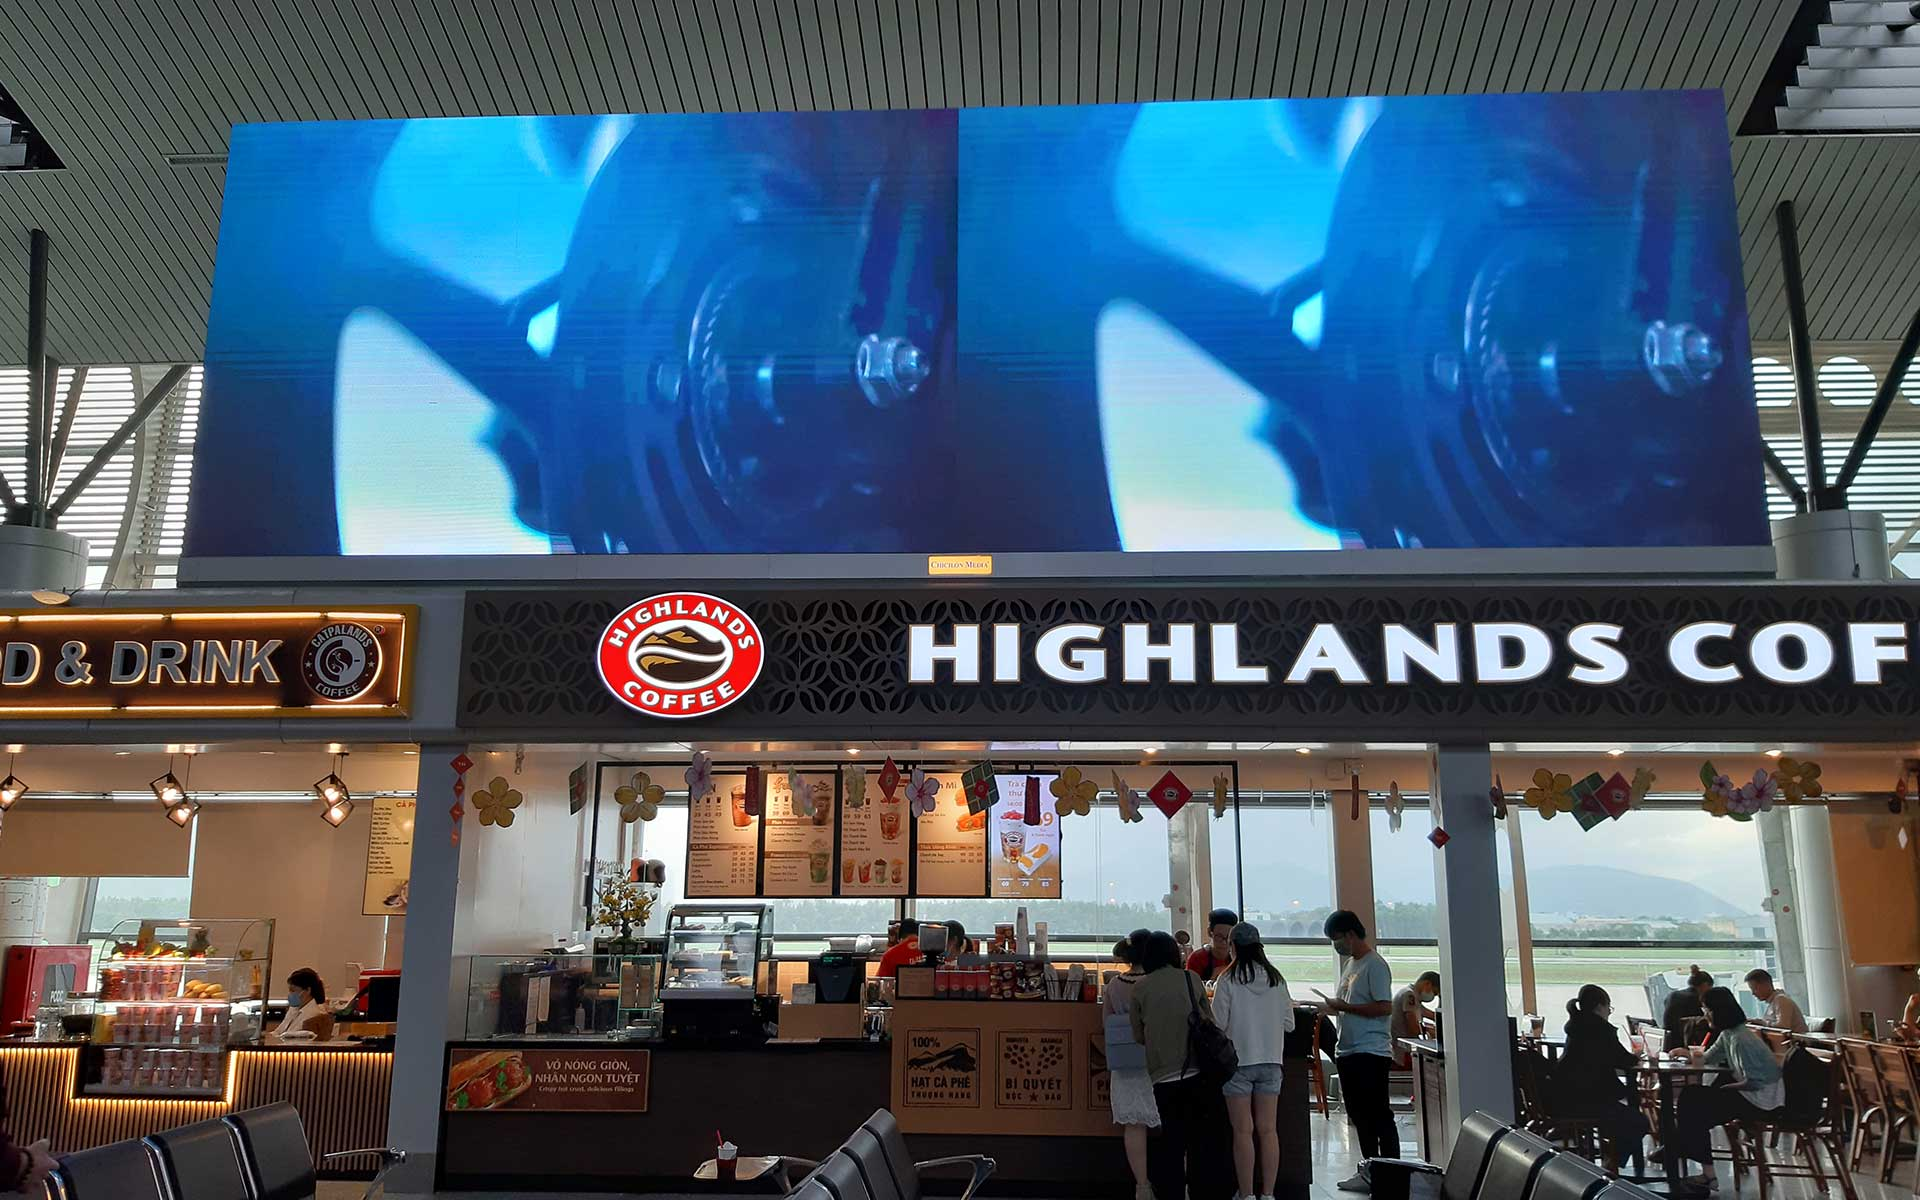 Highlands Coffee at the airport serves coffee, freeze, tea and bread